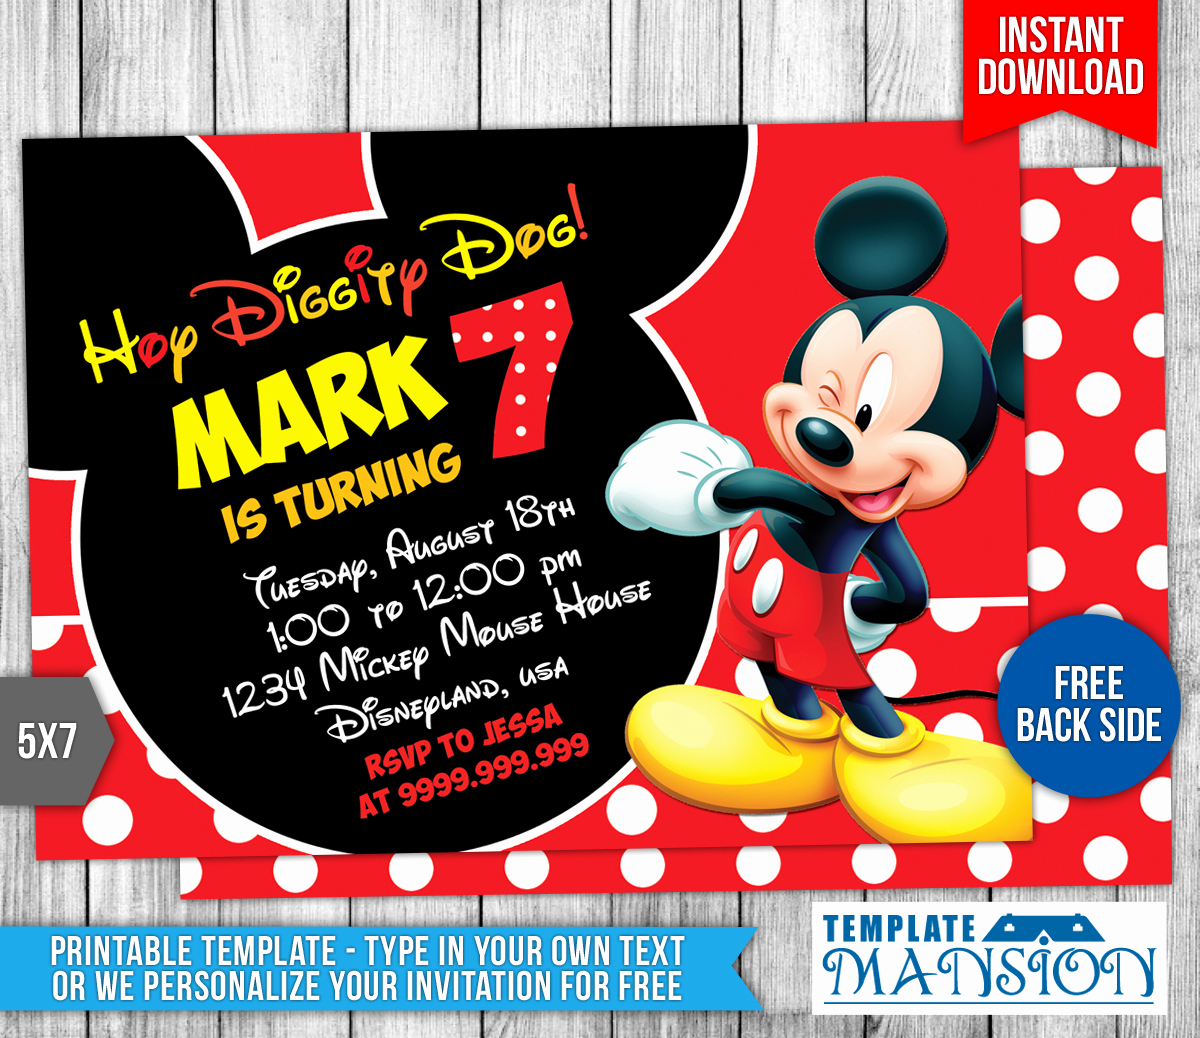 Mickey Mouse Invitation Template Fresh Mickey Mouse Birthday Invitation 4 by Templatemansion On